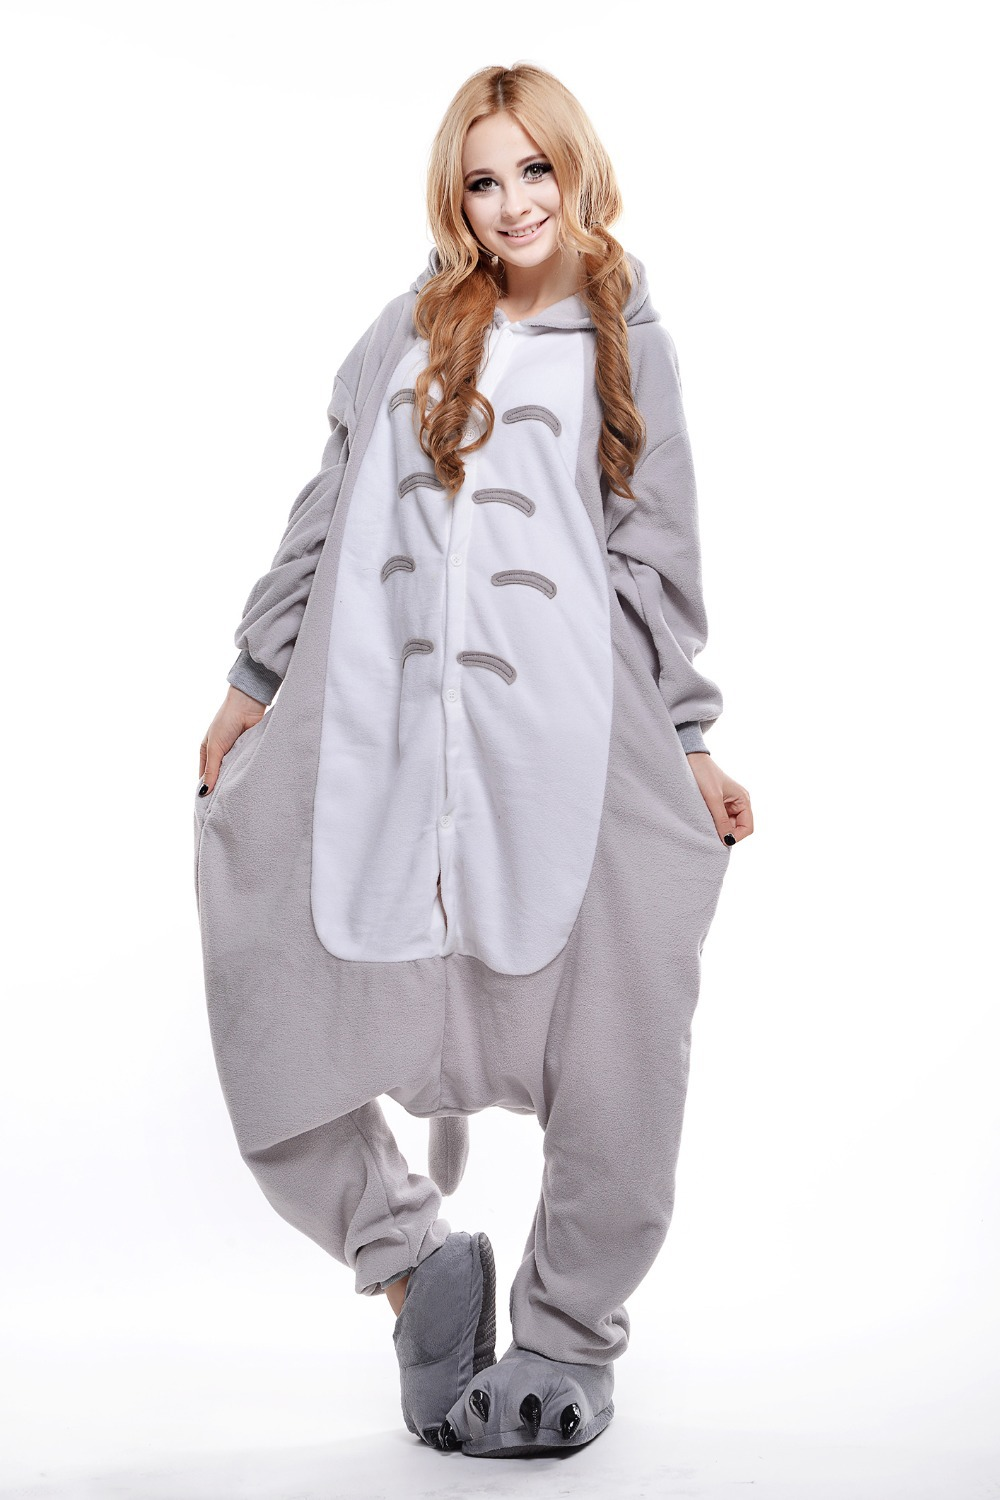 caf4abef252b Adult Totoro Onesie  Animal Footed Pajamas  Plus Size Anime Pajamas  Halloween  Costumes for Women and Men  Carnival Costumes-in Mascot from Novelty ...